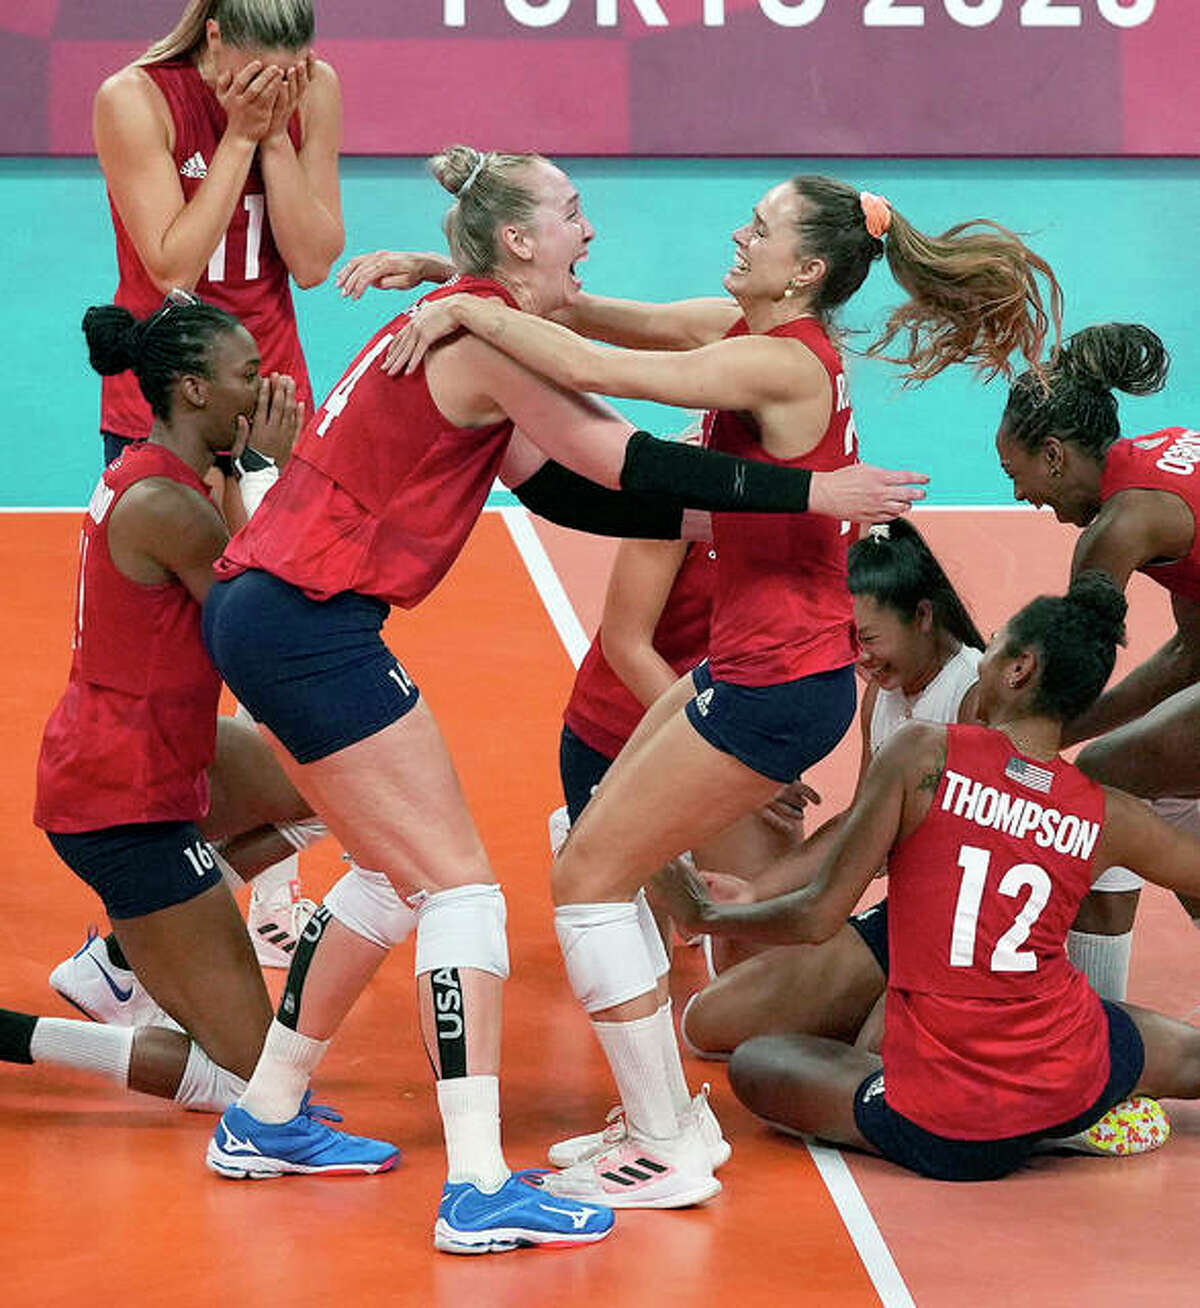 Collinsville native Michelle Bartsch-Hackley, left and teammate Kelsey Robinson celebrate with teammates after the US women's volleyball team defeated Brazil 3-0 Sunday to win the gold medal match at the Tokyo Olympic Games. Bartsch-Hackley is a 2008 graduate of Collinsville High and, along with fellow Olympian Jordyn Poulter, a former standout at the University of Illinois.